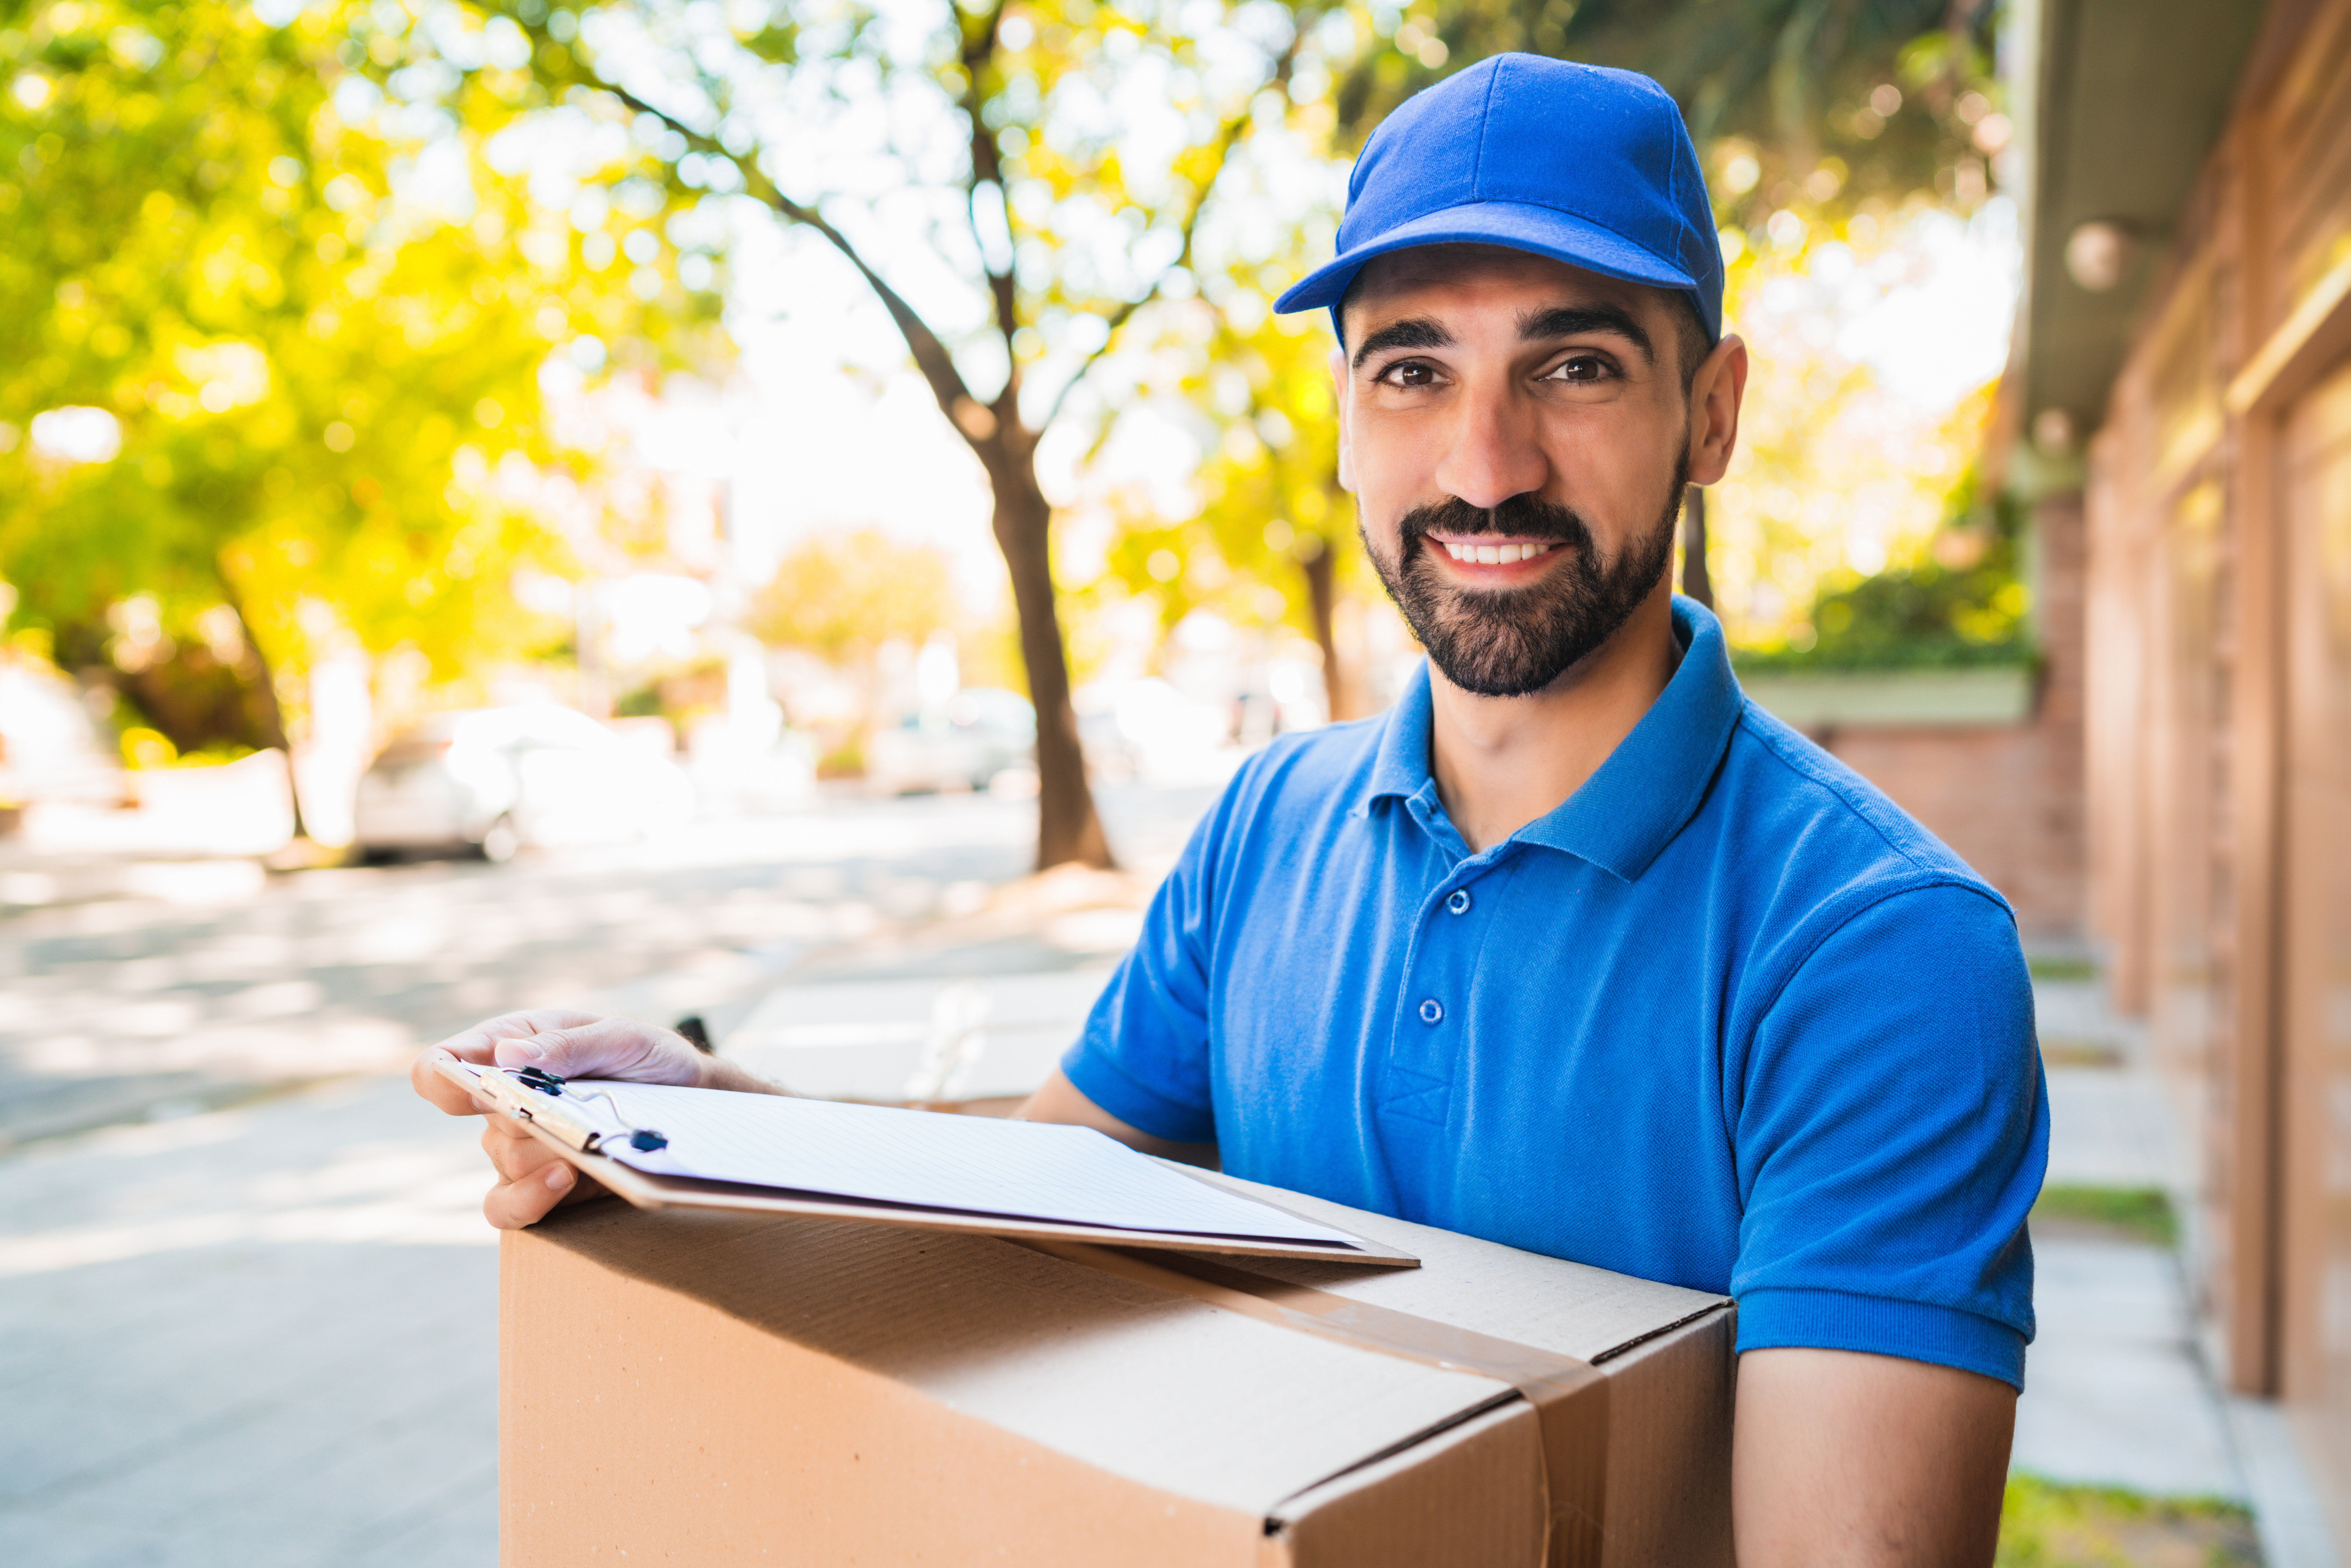 How Will You Know That You Have Chosen the Right Moving Company? The Checklist